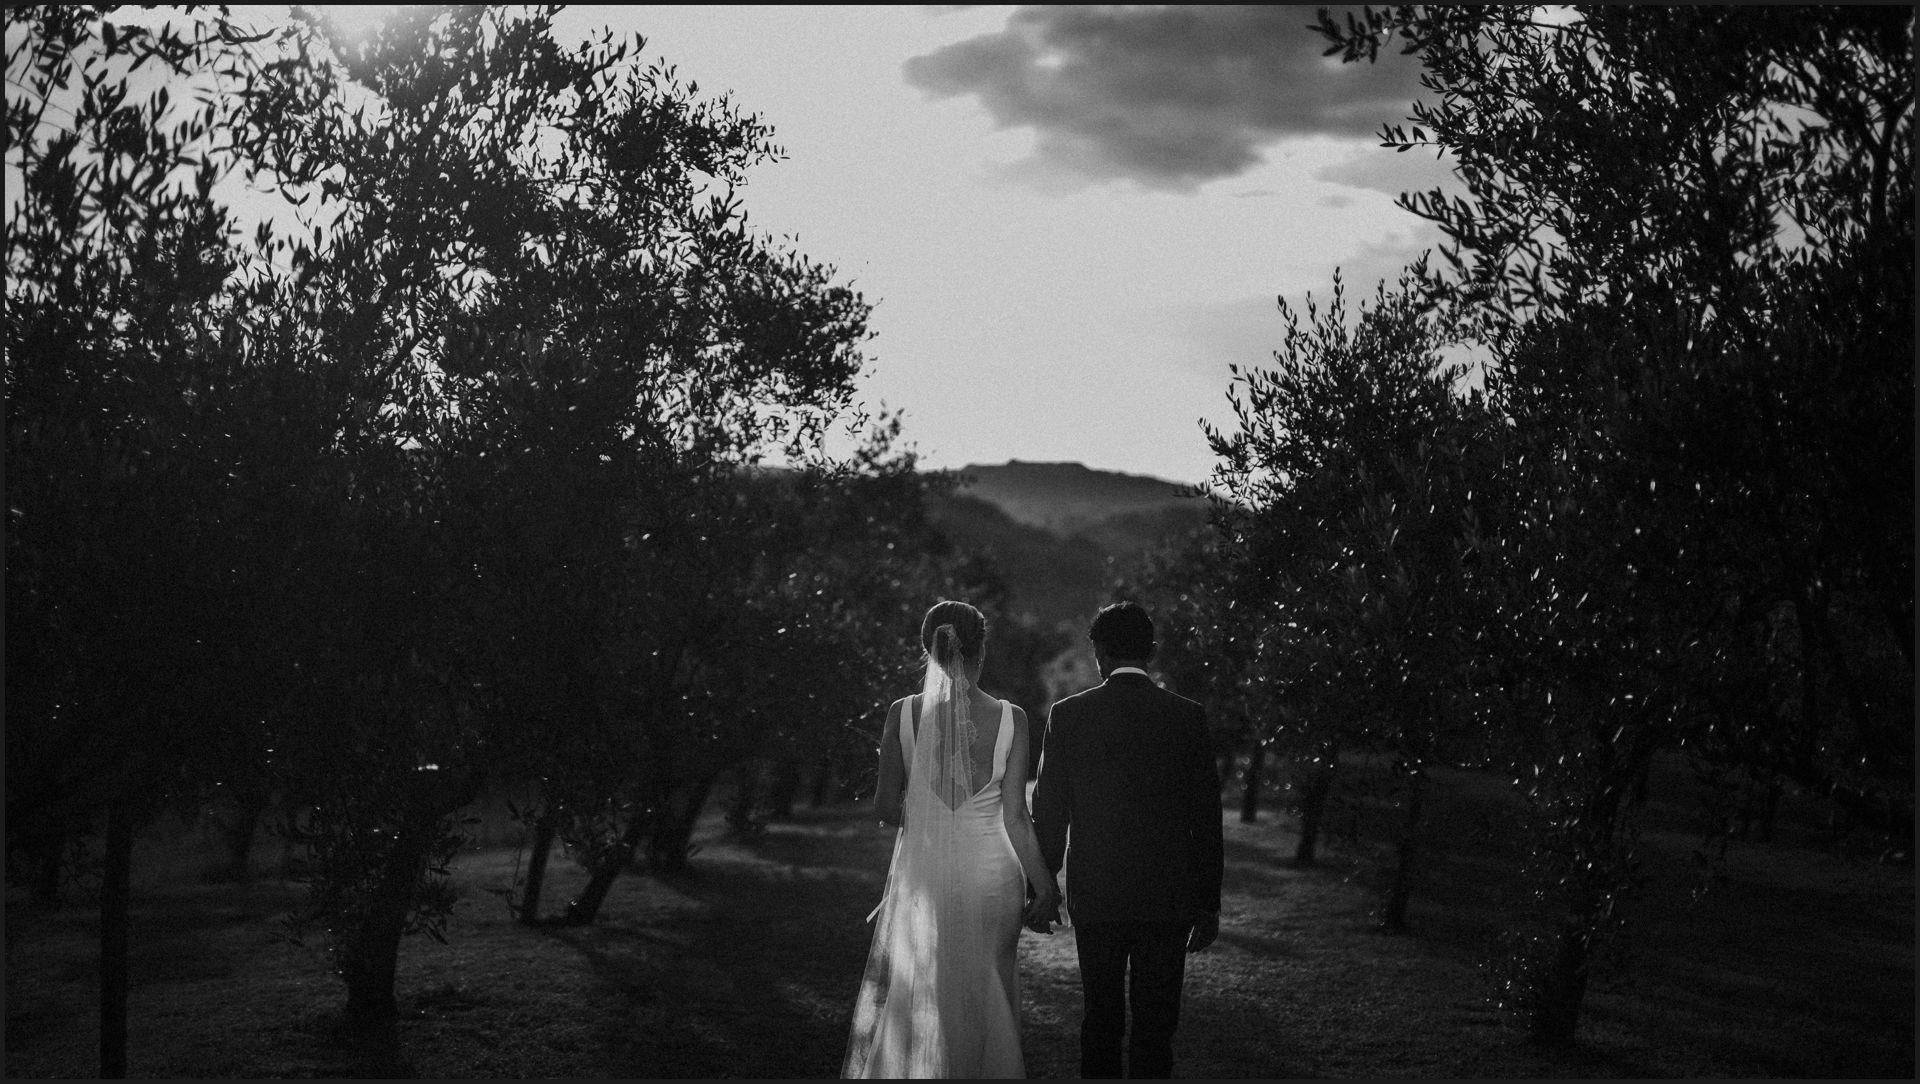 tenuta di canonica, umbria, wedding, bride, groom, love, black and white,